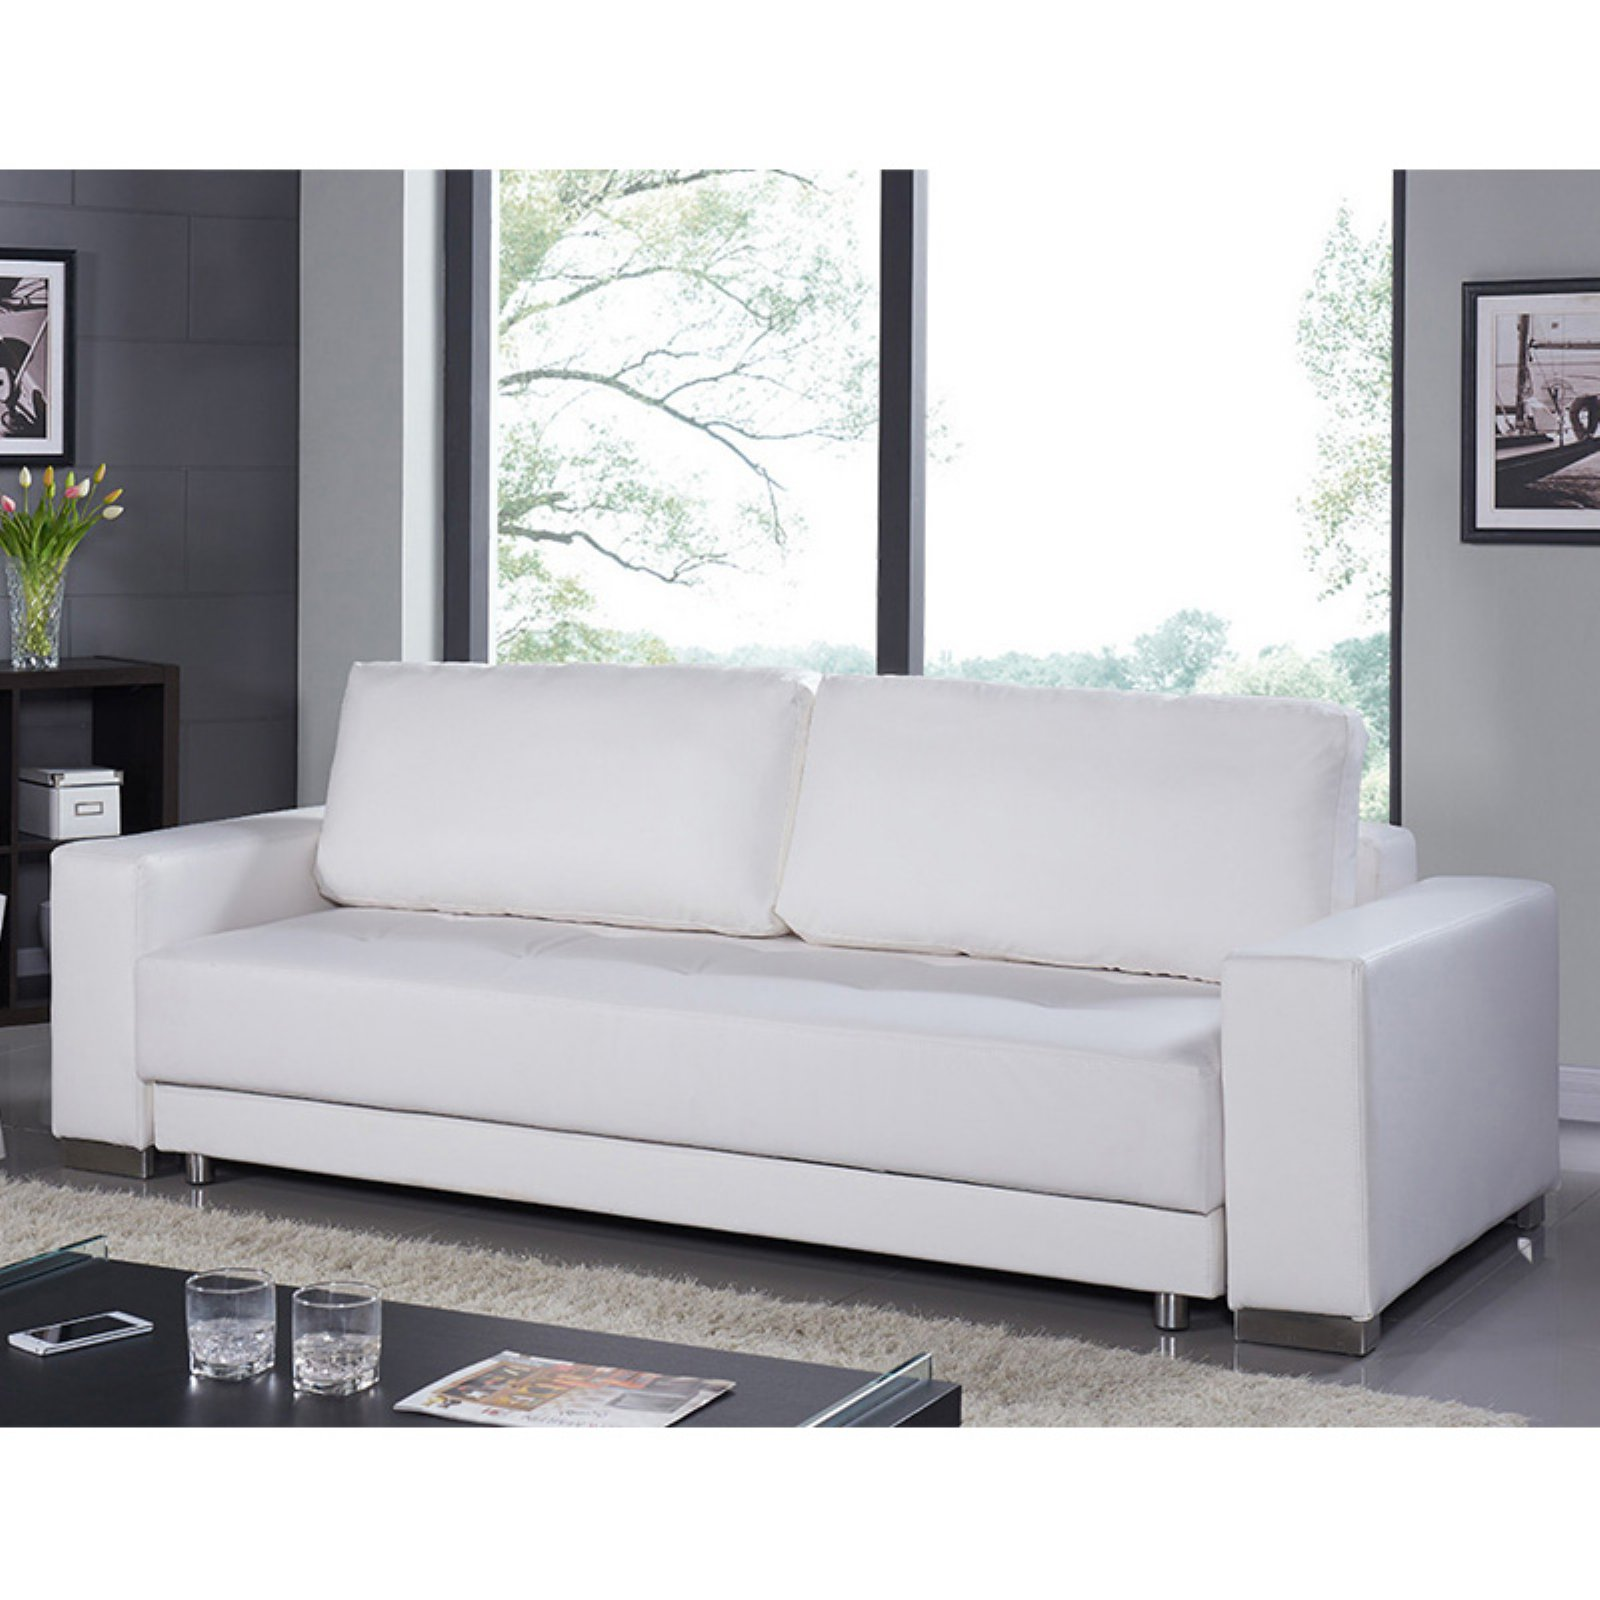 bianca futon sofa bed review good brand names casabianca furniture cloe collection white eco leather